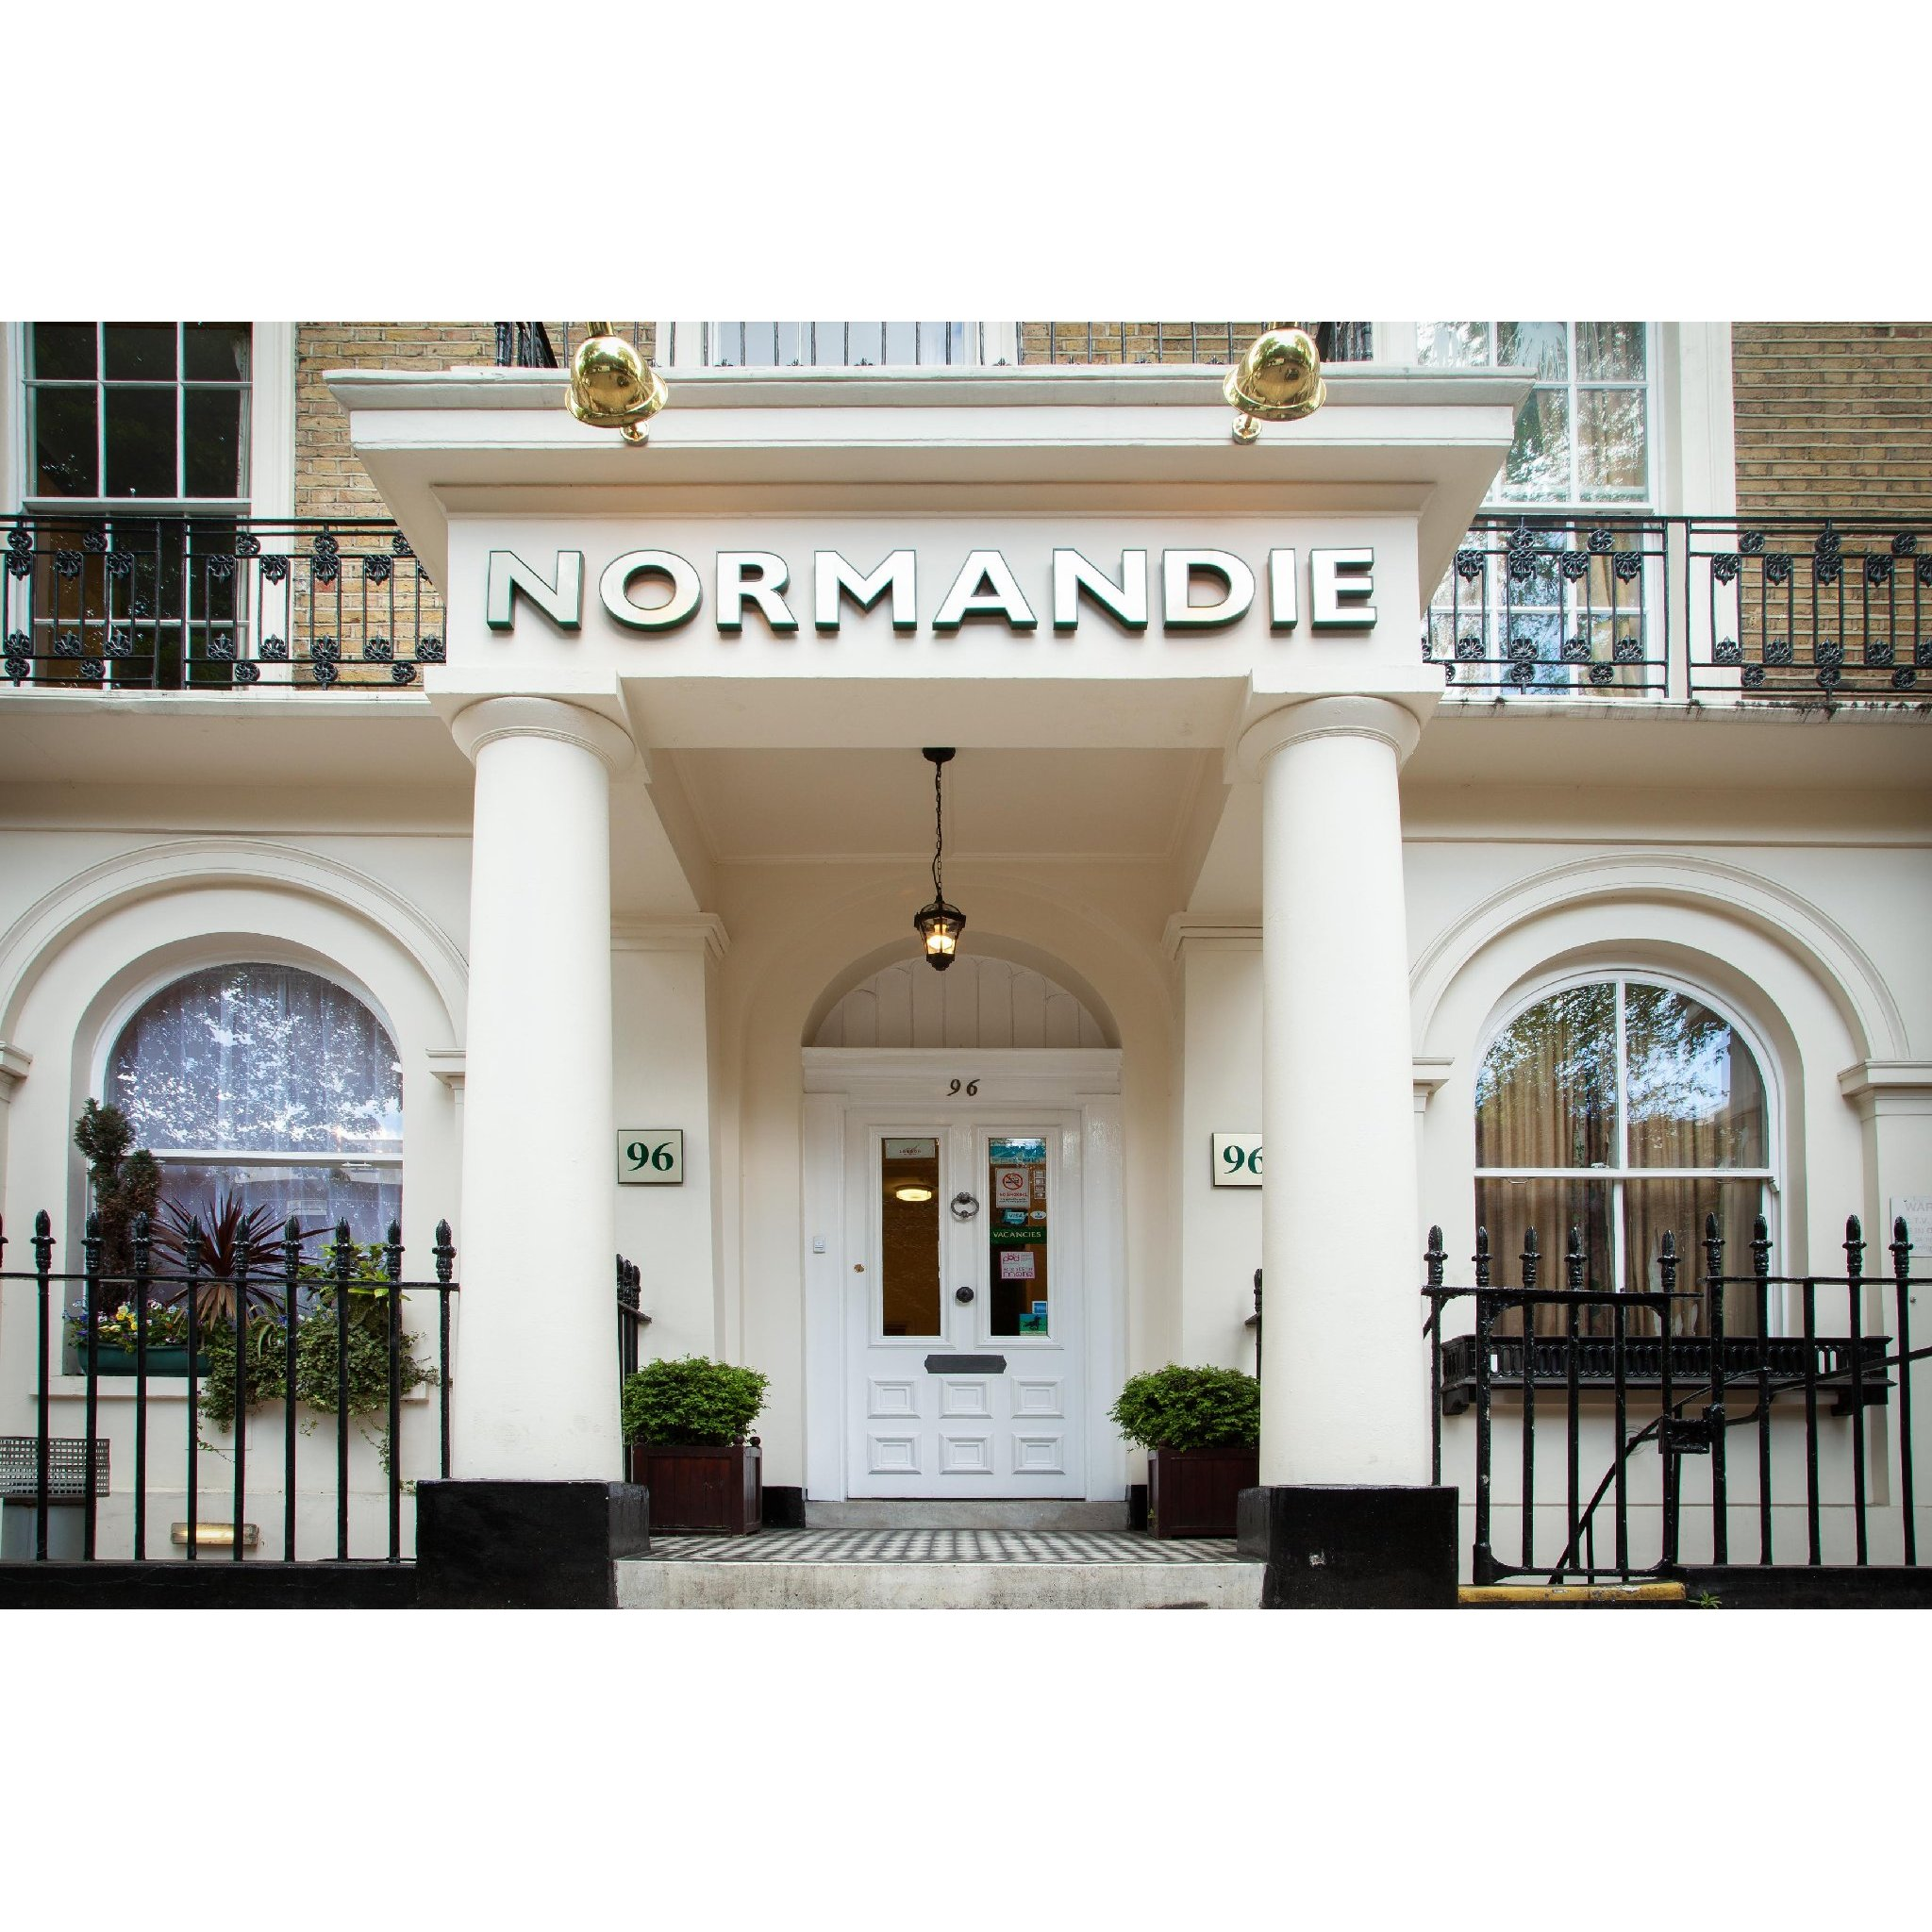 The Normandie Hotel - London, London W2 1UH - 020 7402 9456 | ShowMeLocal.com